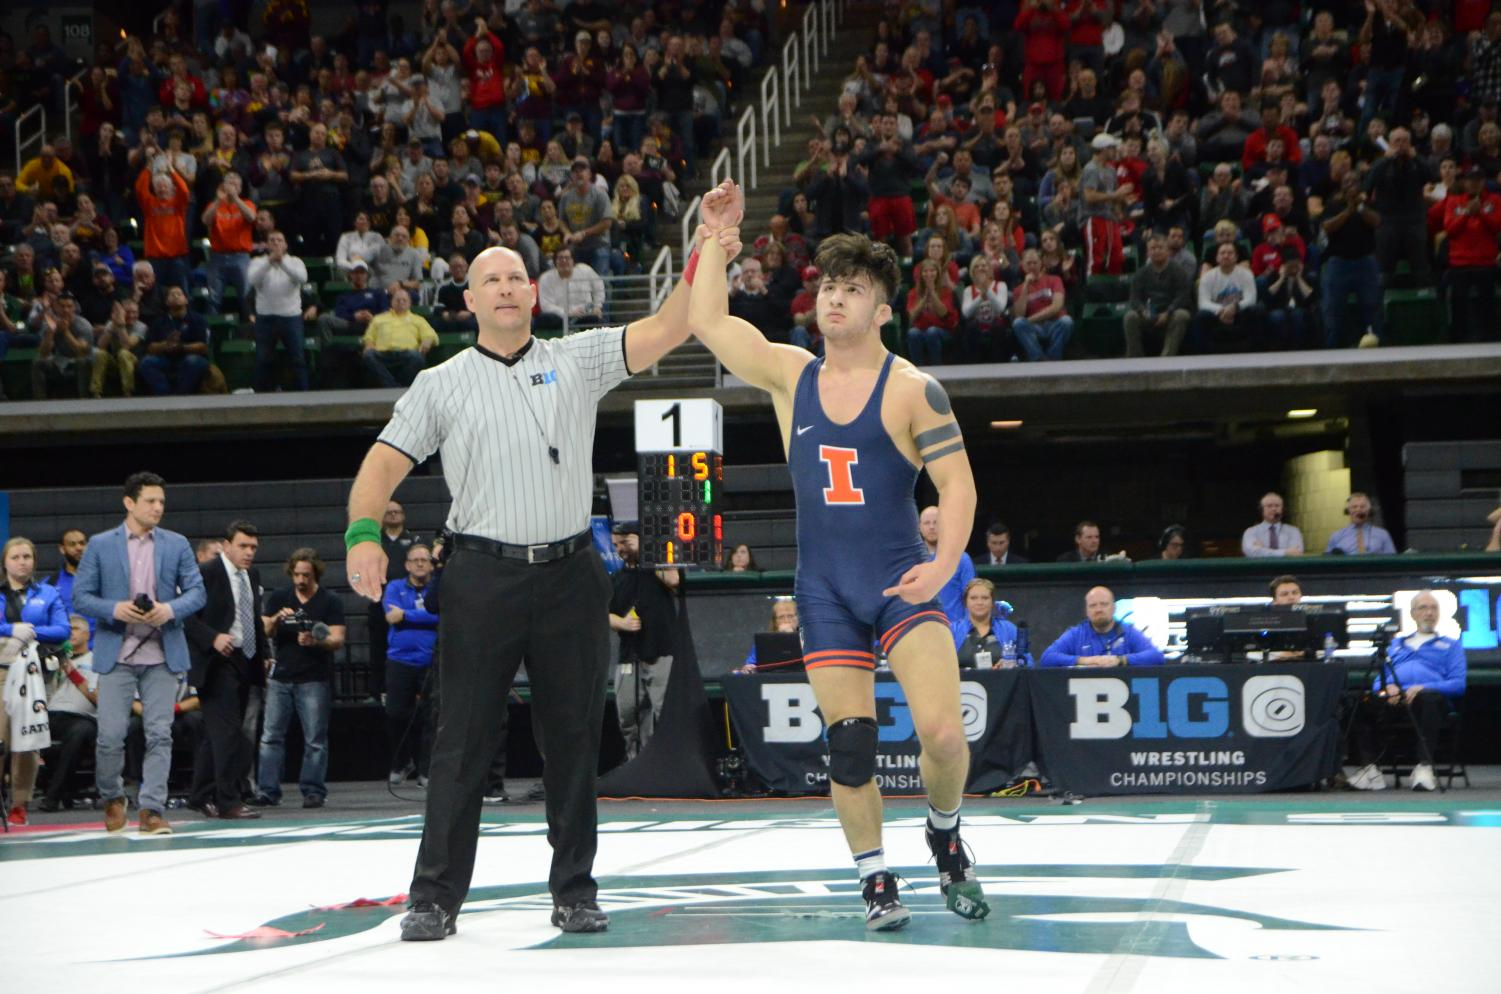 Martinez became the first Illini to win four Big Ten Championships, and he hopes to win the national championship.